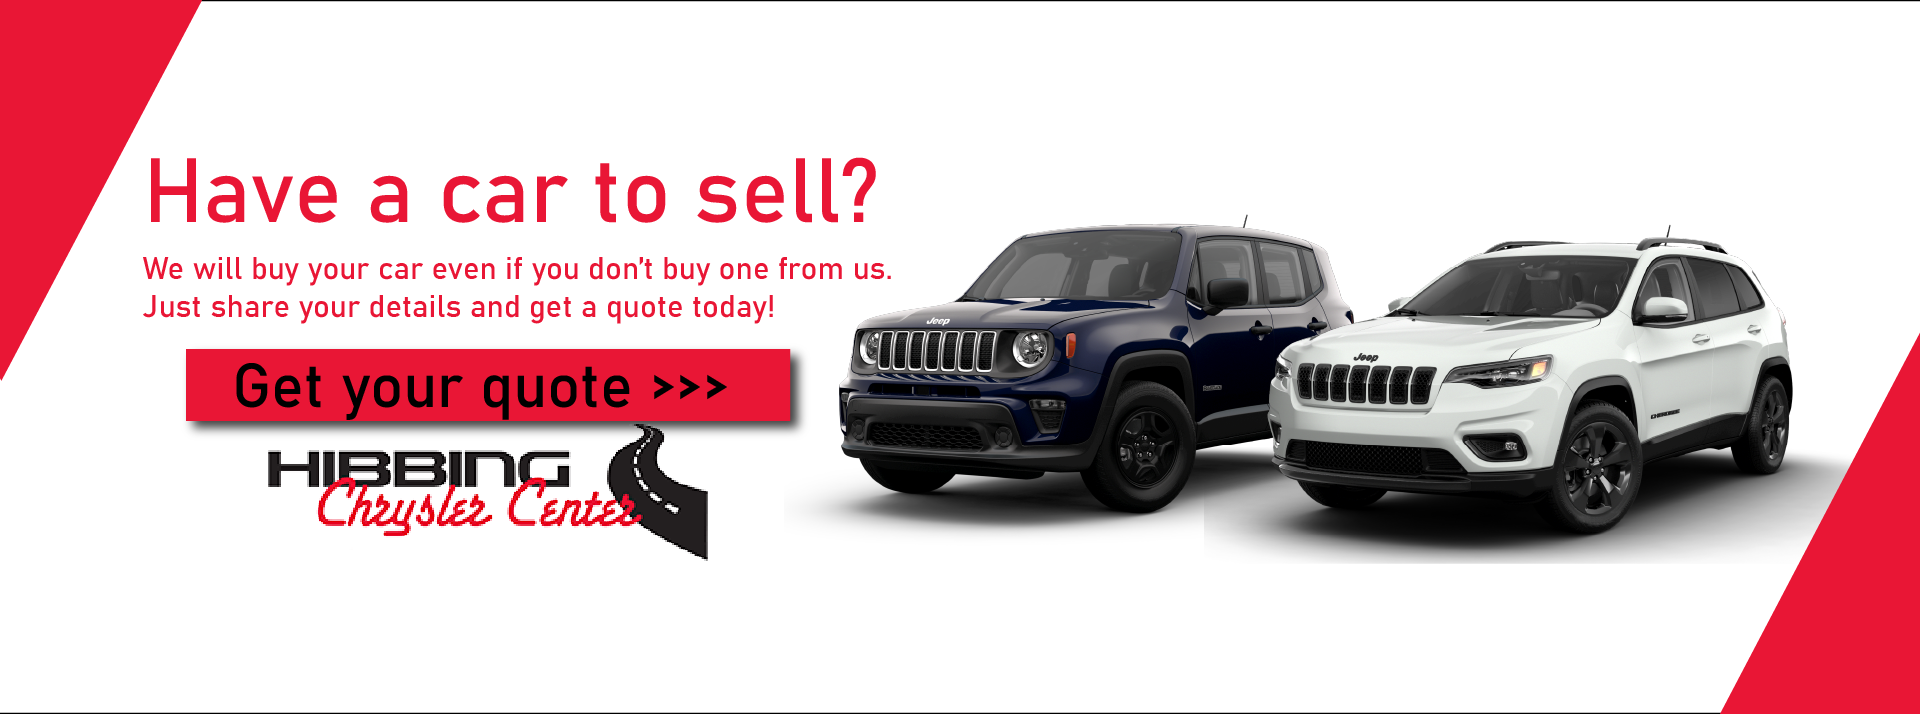 sell your car 1